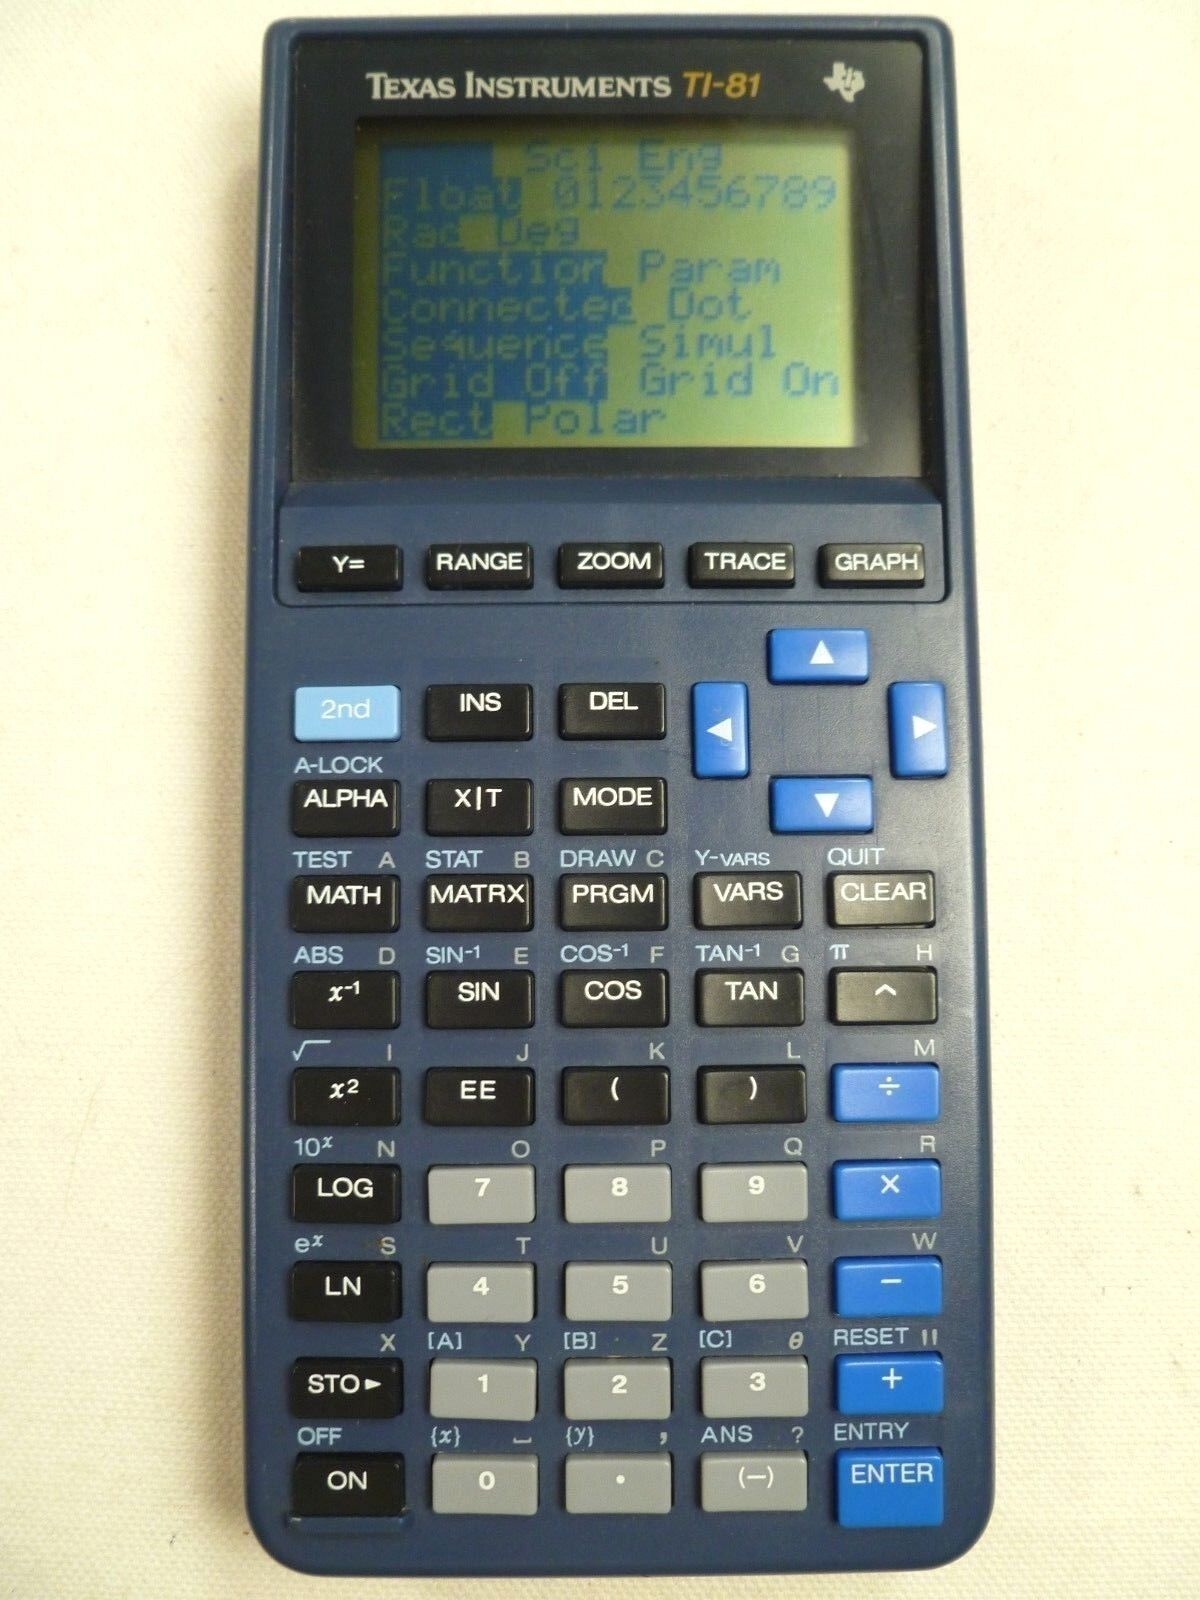 Texas Instruments TI-81 Graphics Calculator Tested Working Office School Supply